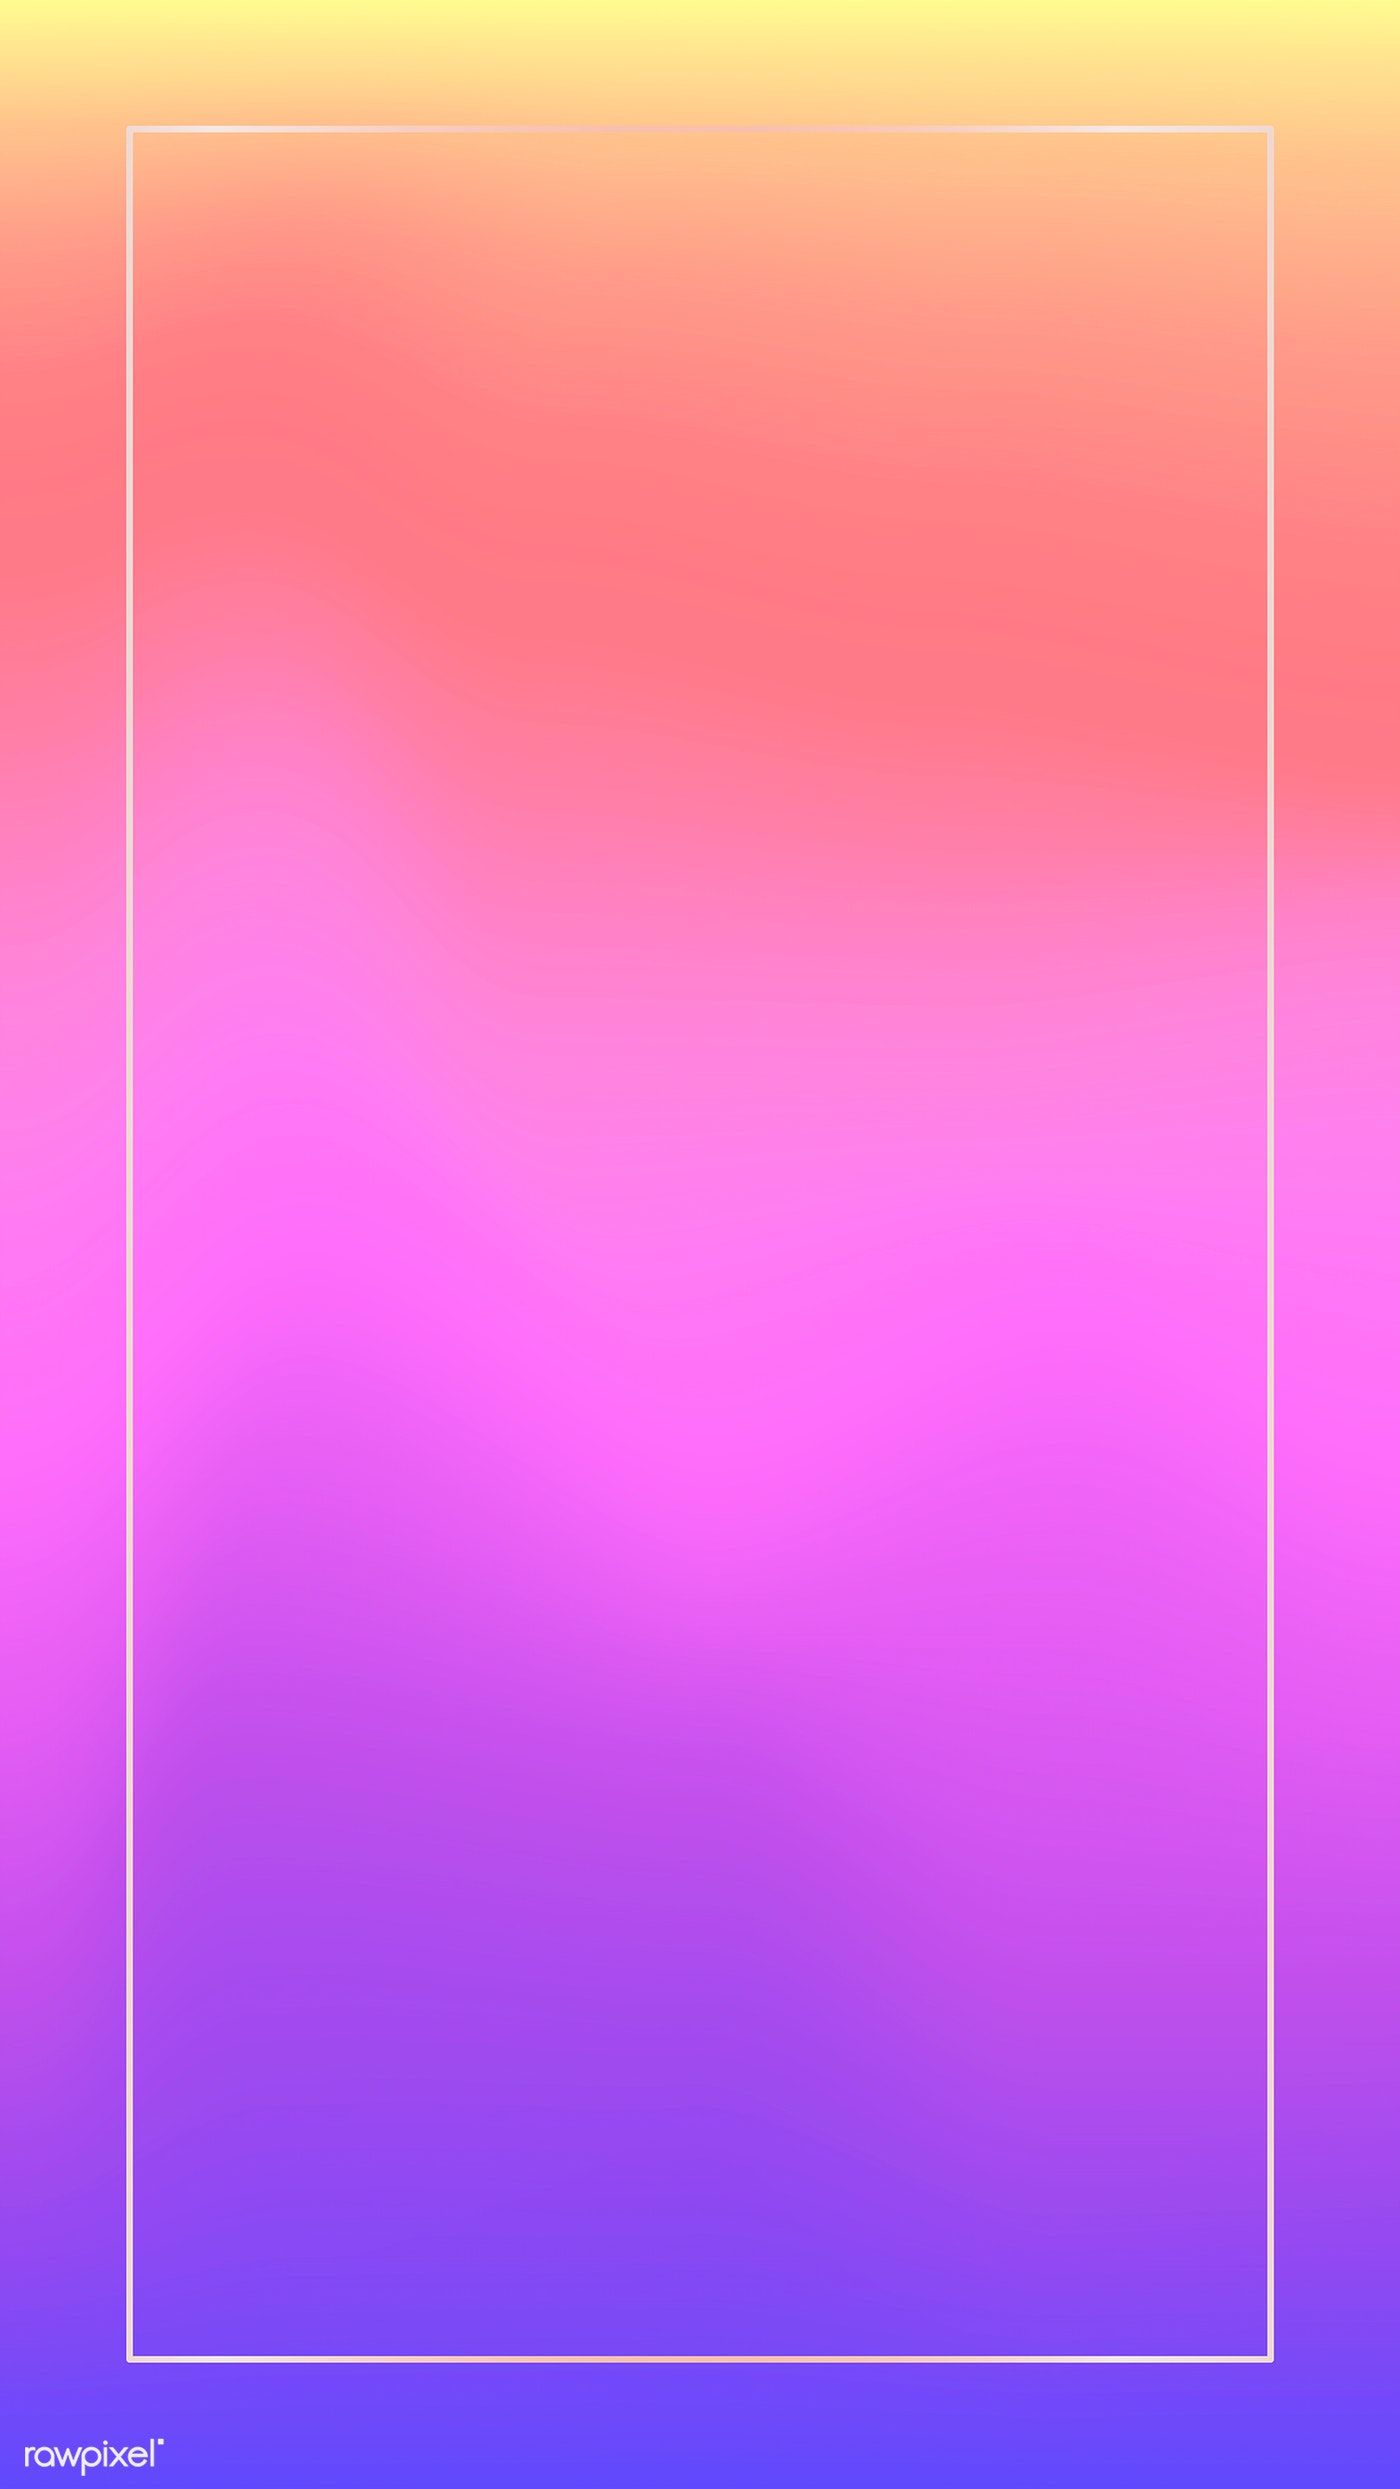 Download Premium Vector Of White Frame On Holographic Pattern Mobile Phone Art Wallpaper Iphone White Frame Holographic